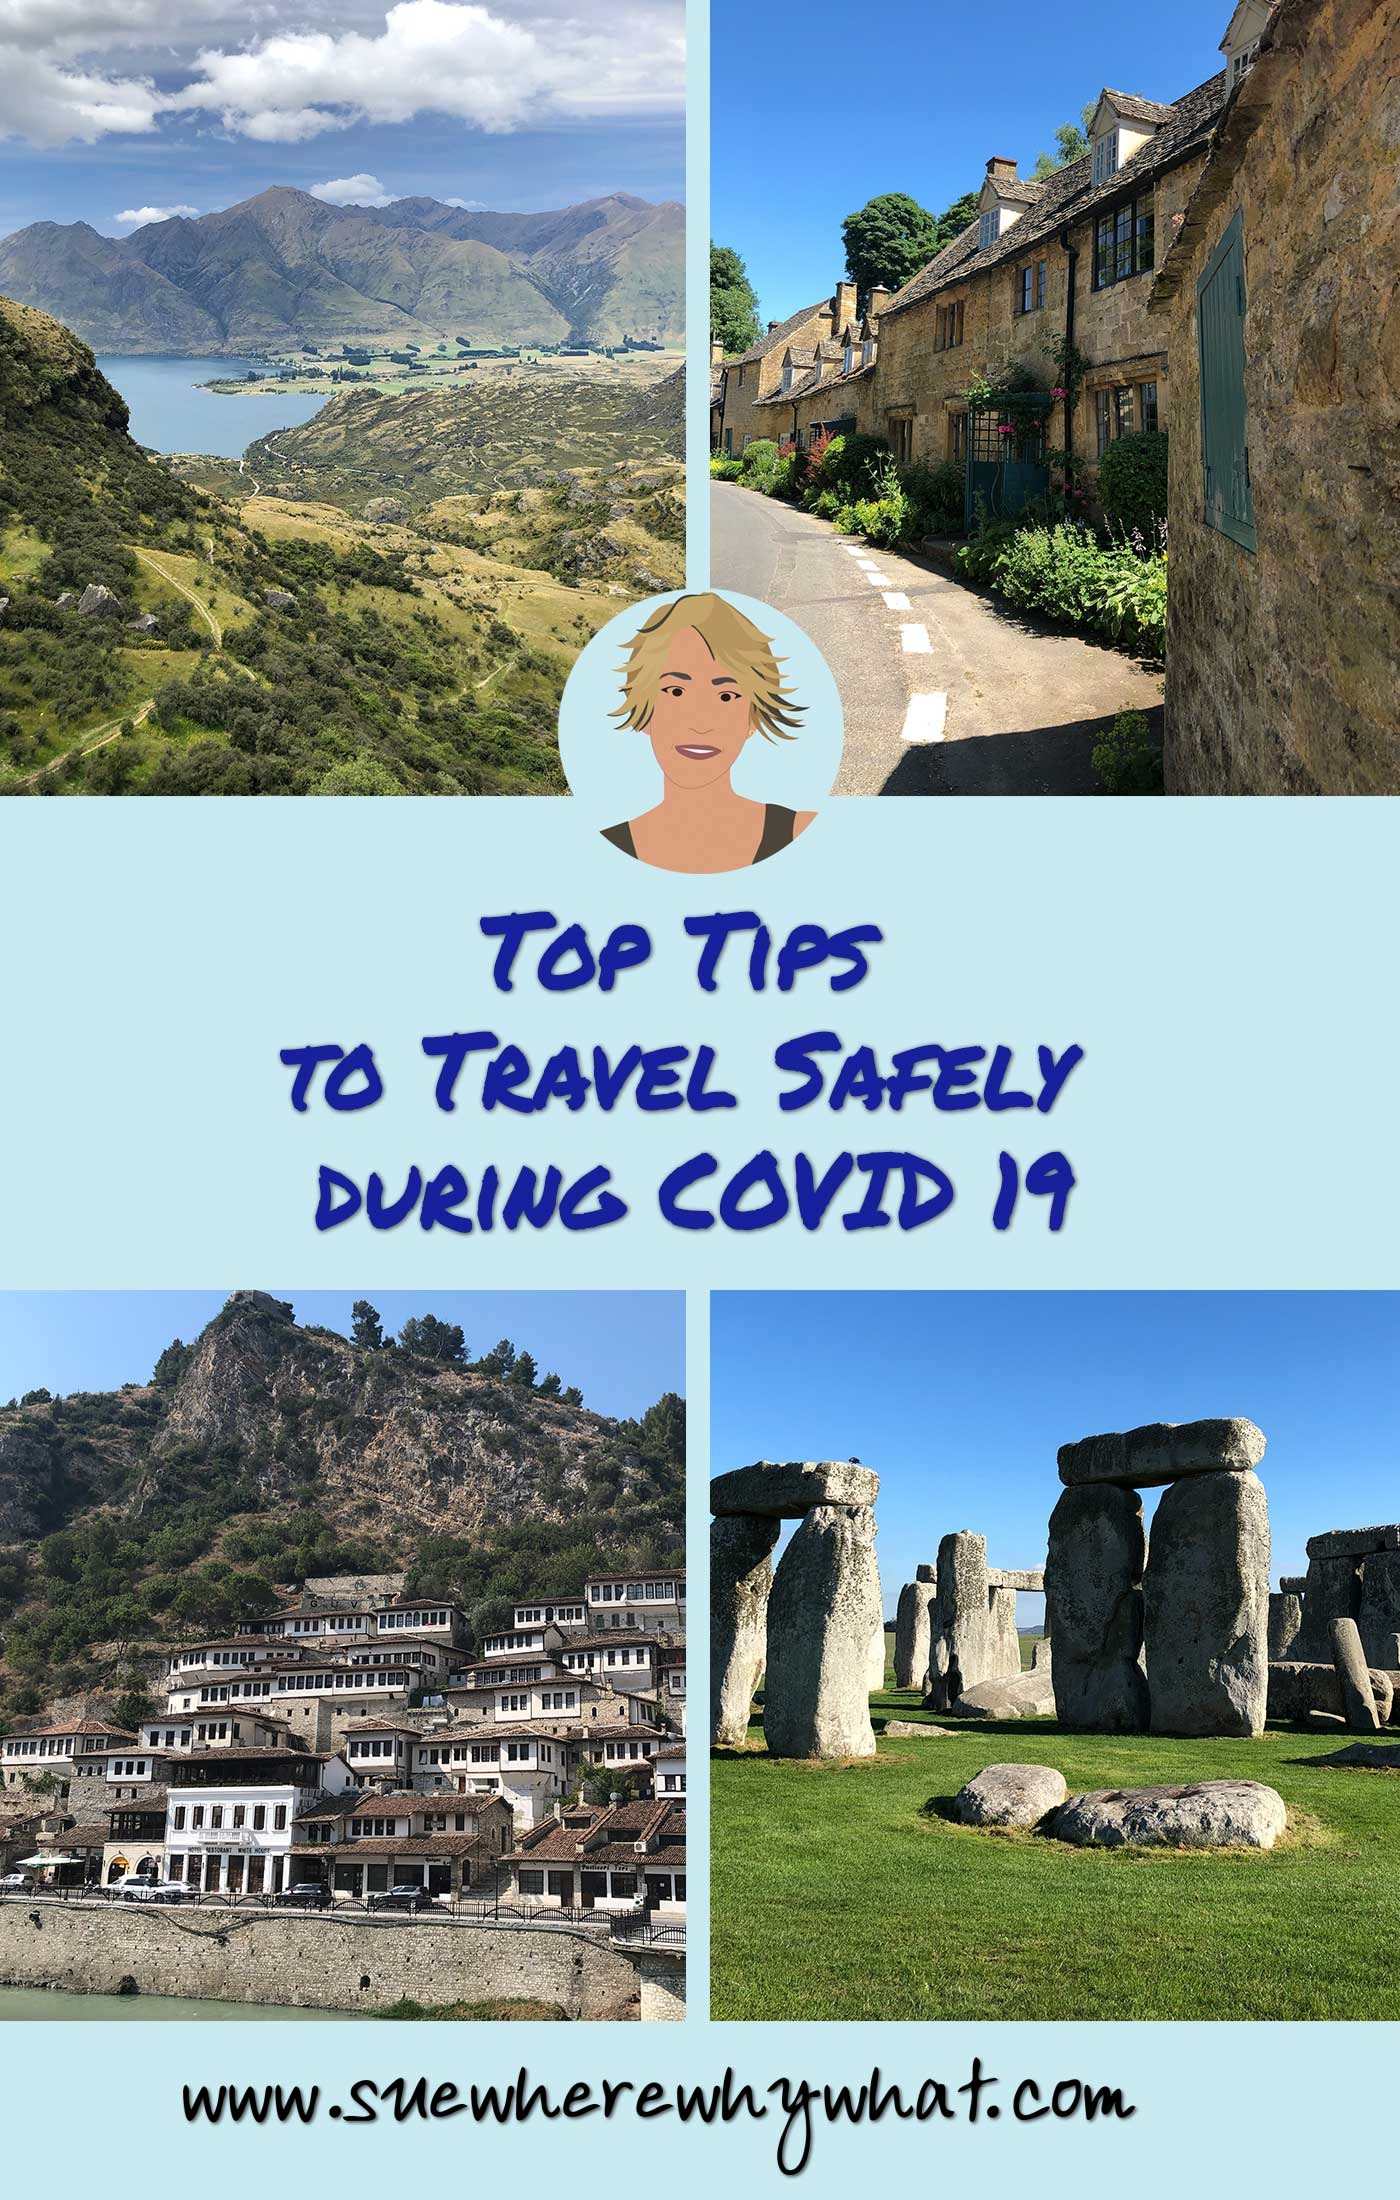 Top Tips to Travel Safely during COVID 19